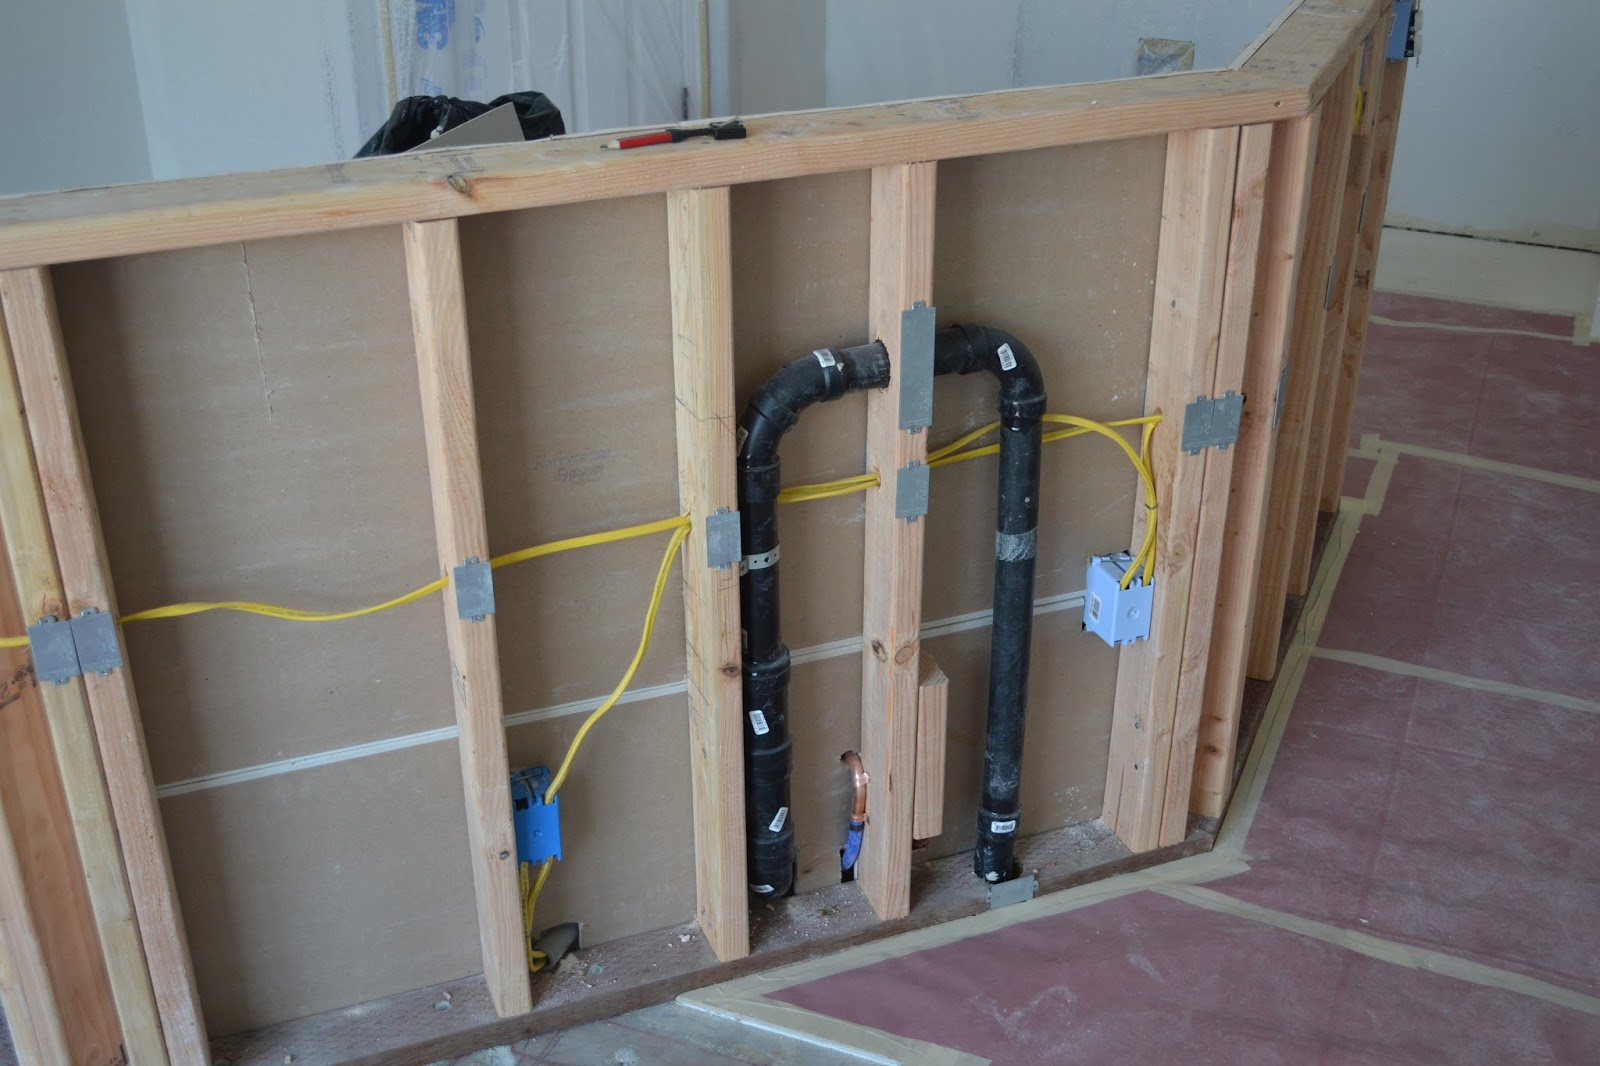 Electrical Plumbing Kitchen Wall Framed